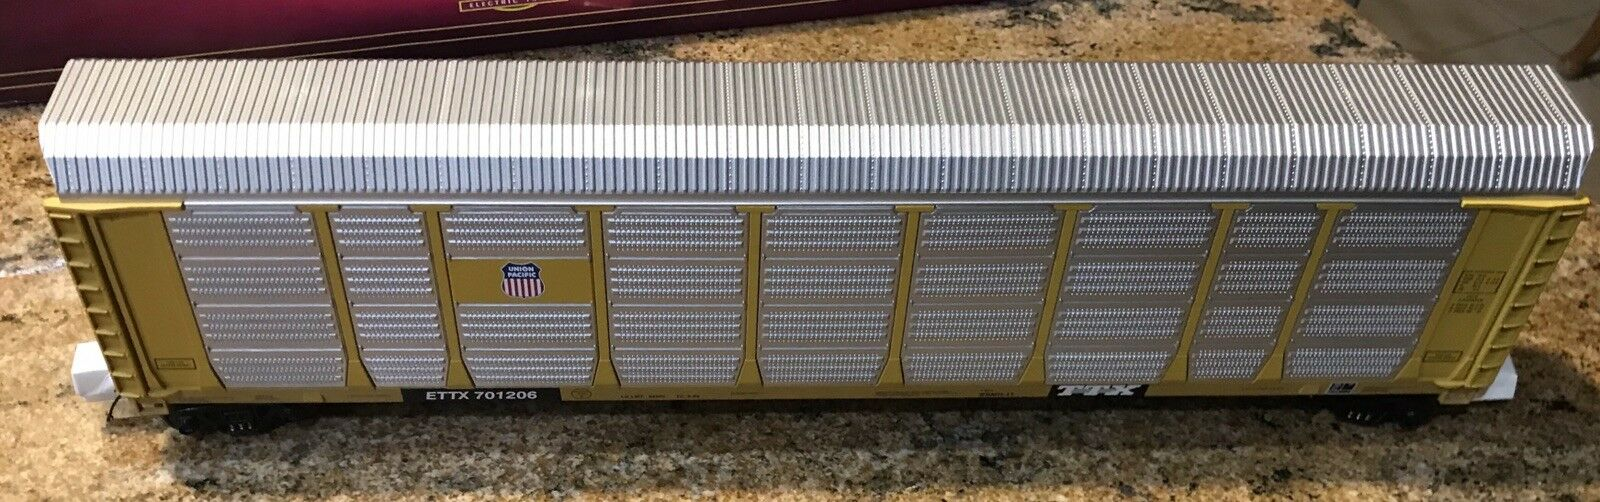 MTH Union Pacific   701206  CORRUGATED AUTO CARRIER  20-98407 NEW